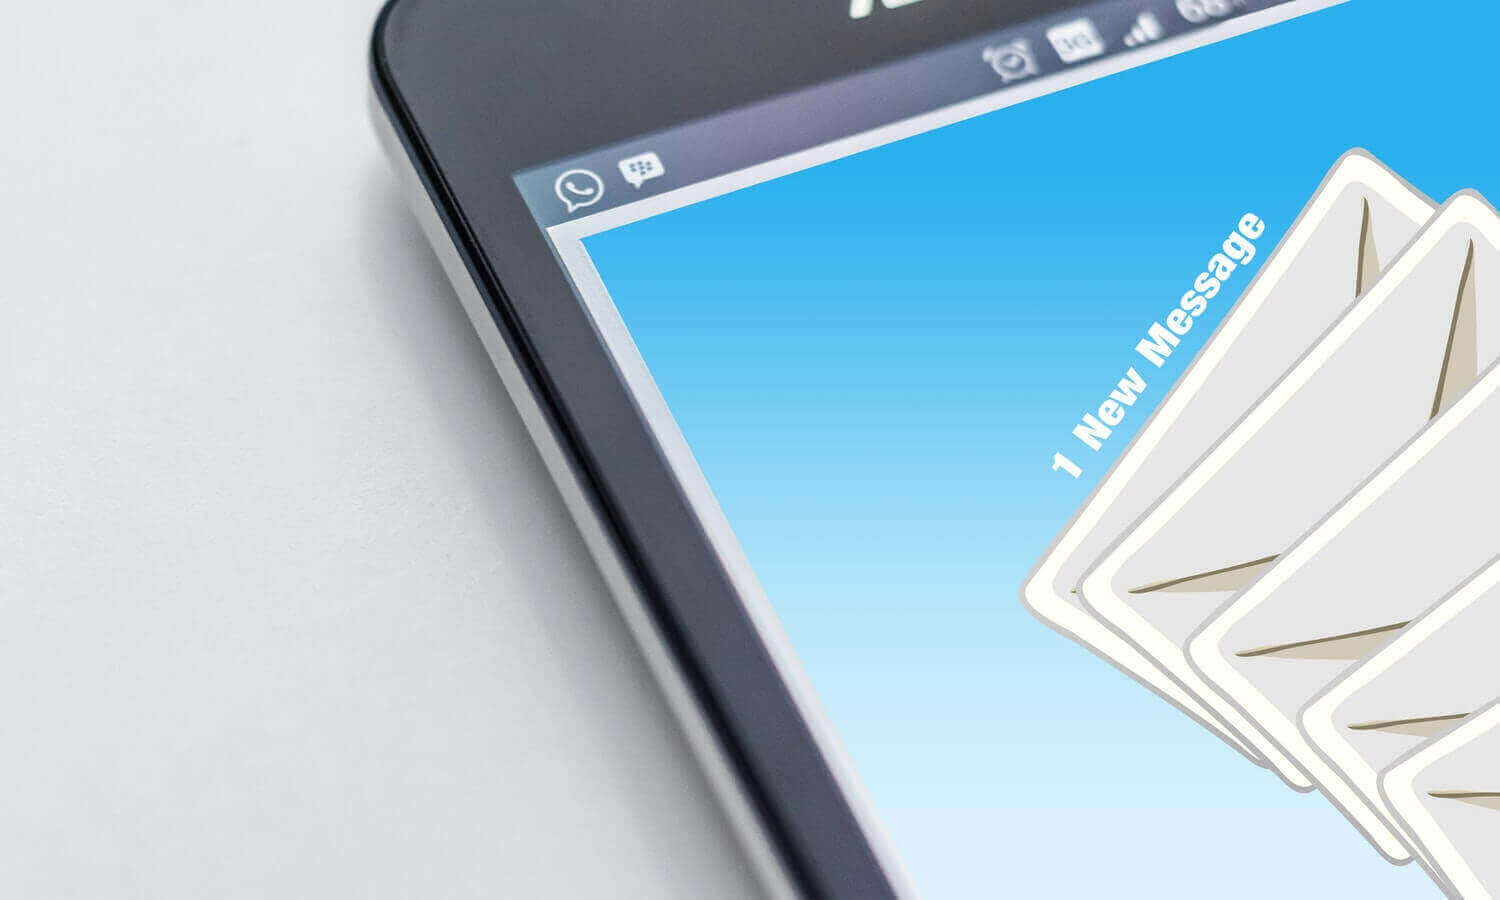 Cago launches Email Marketing Services